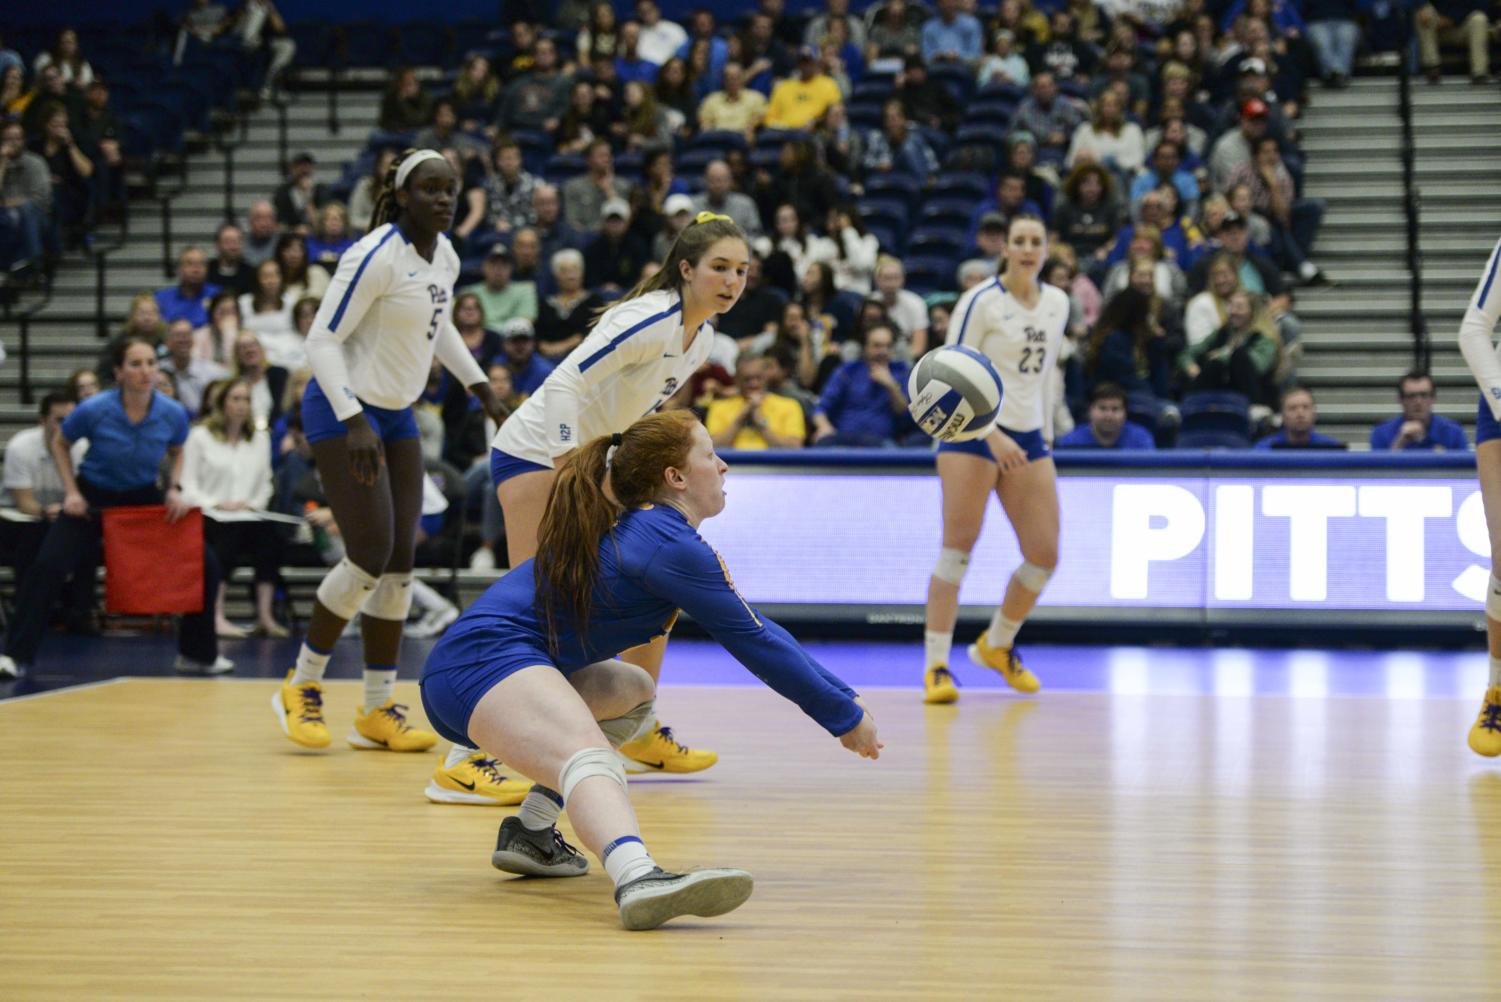 Pitt volleyball continued its win streak this weekend, sweeping both UNC and NC State.